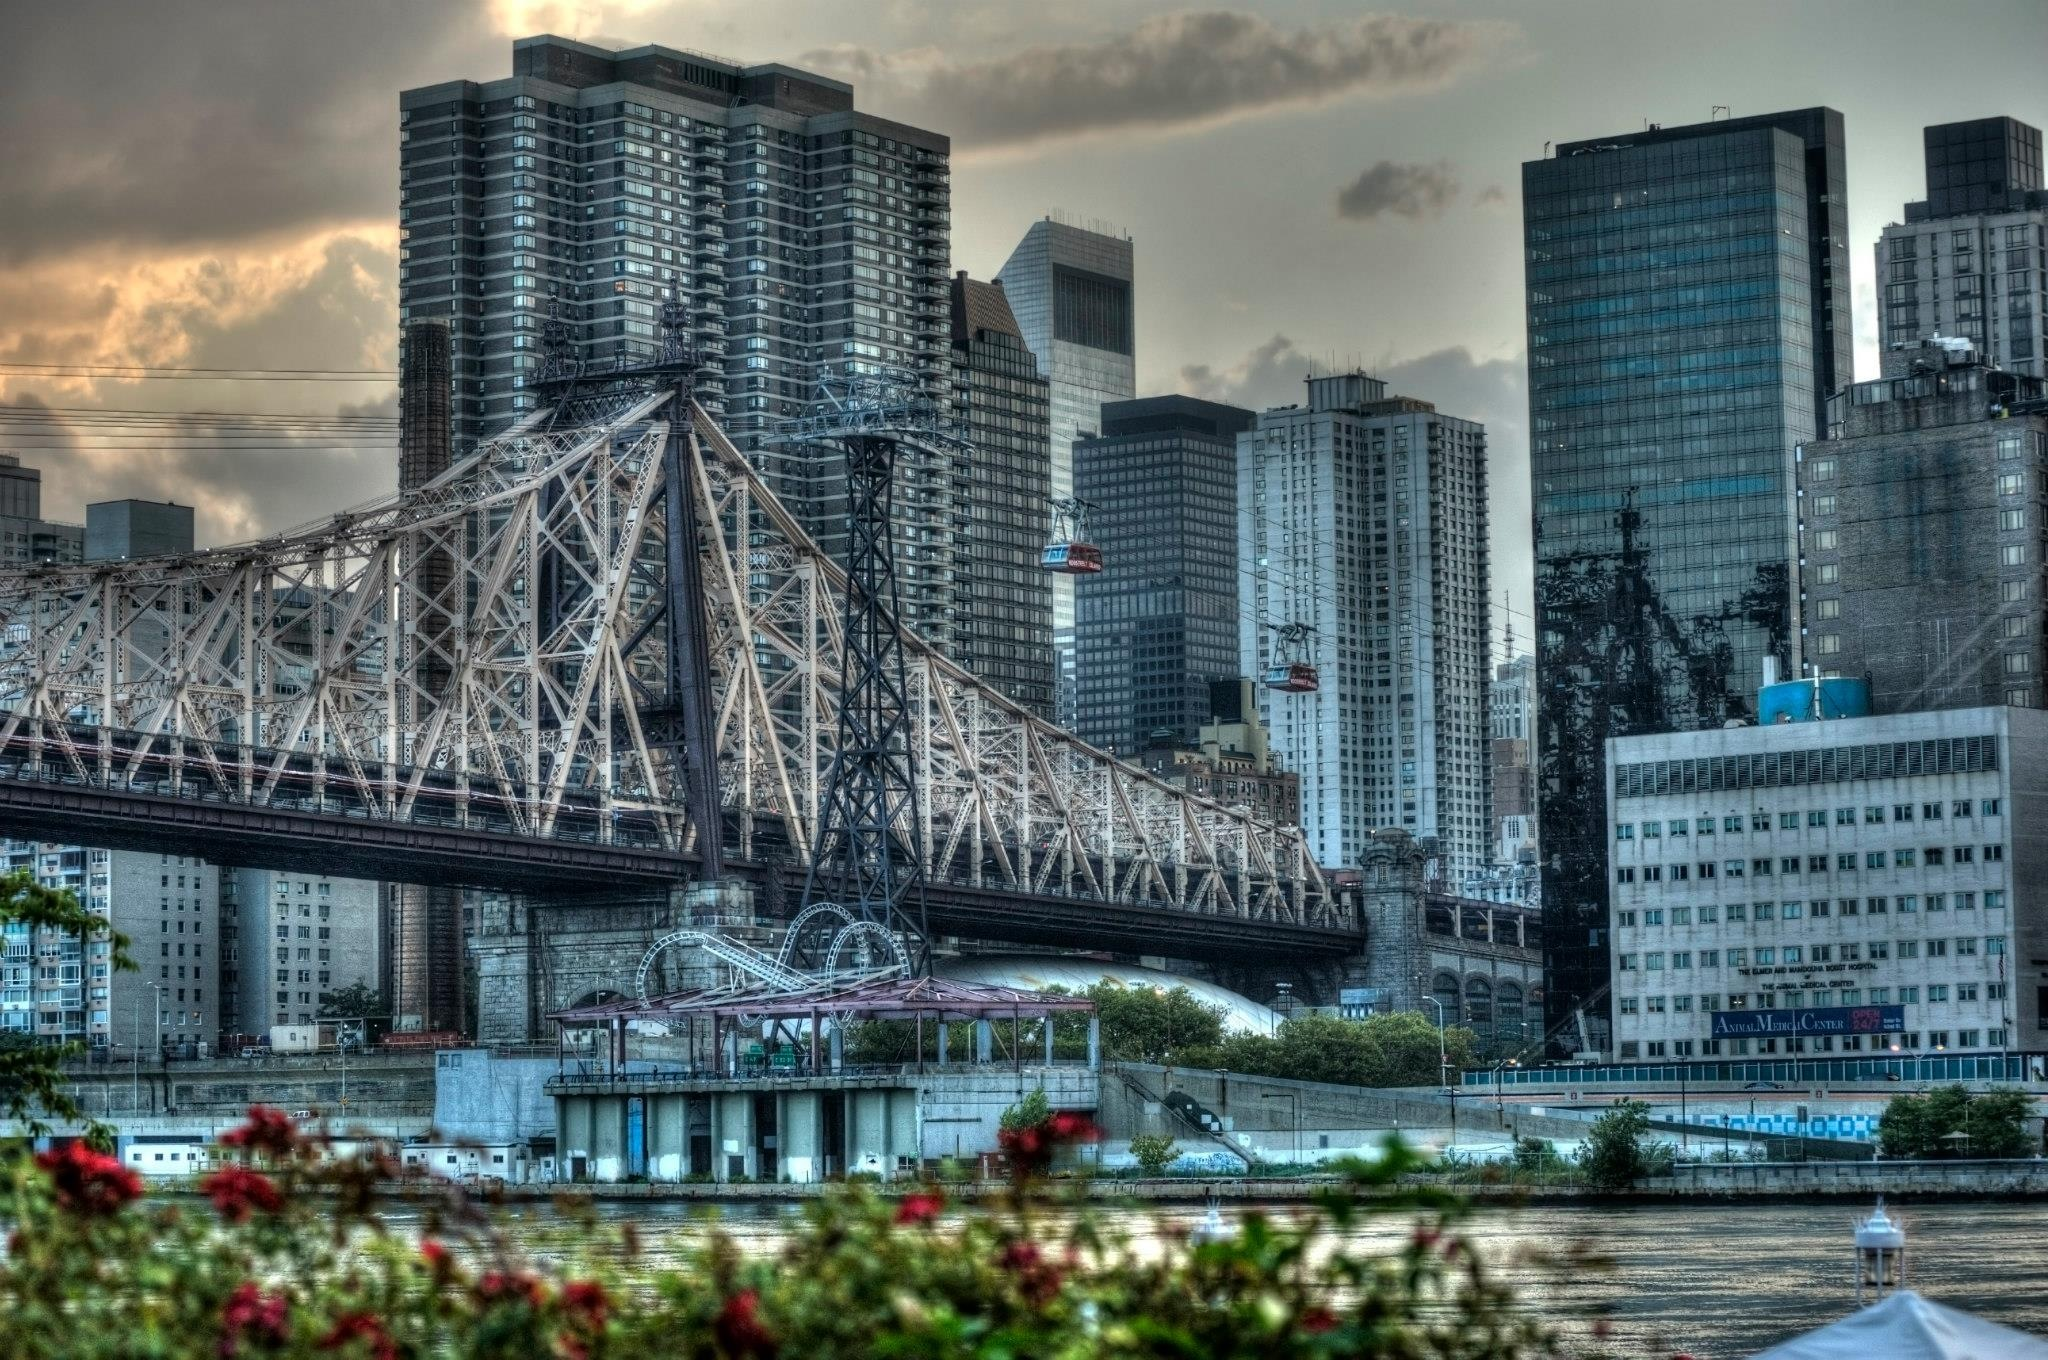 The Queensboro Bridge from Roosevelt Island File 2013-02-27 20.09.09 - Scott B. picked 7/27Took a walk over to Roosevelt Island in 2013, I believe. I've edited this same shot on the computer and then again on the phone. This version has had so many edits that it looks more like a graphic novel than a photo. (L&F Filename 2013-02-27 20.09.09)